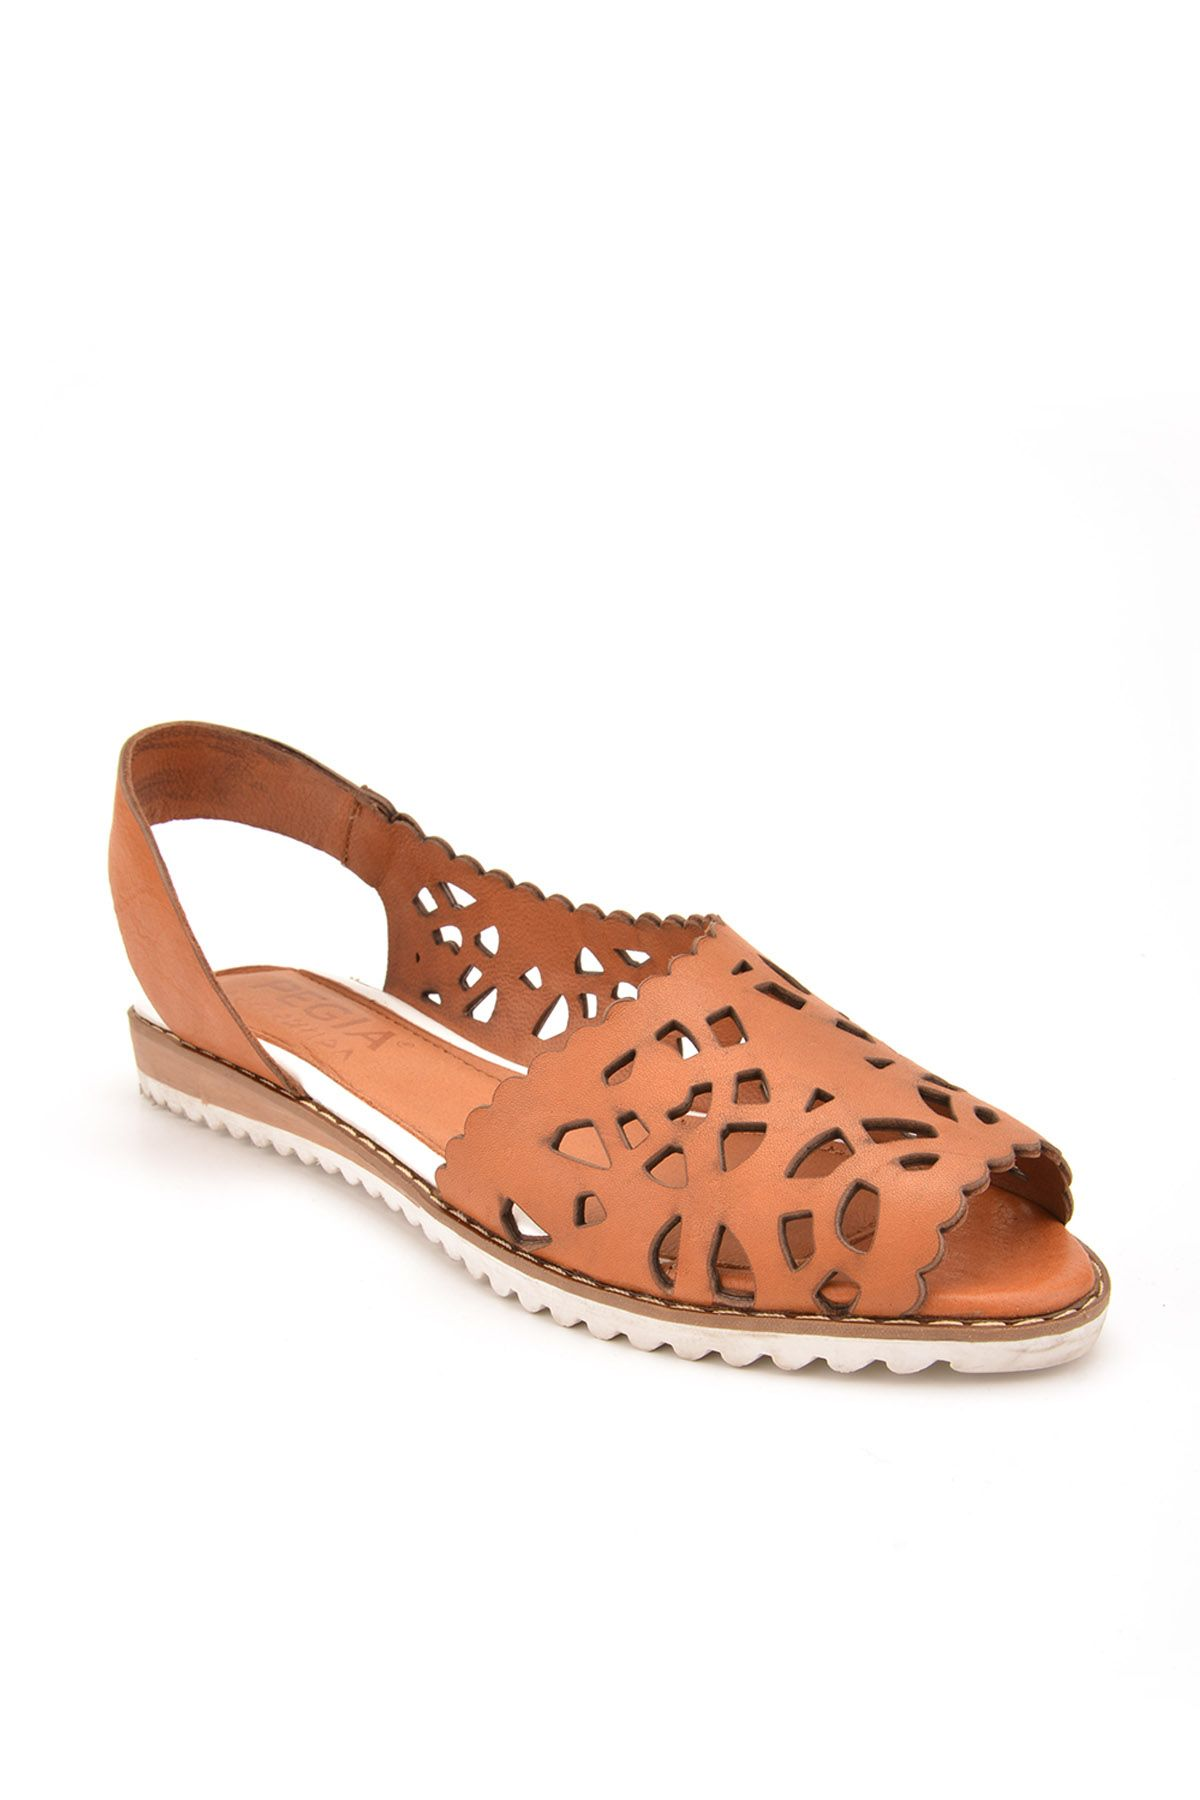 Pegia Open Fronted Women Sandals From Genuine Leather REC-128 Ginger